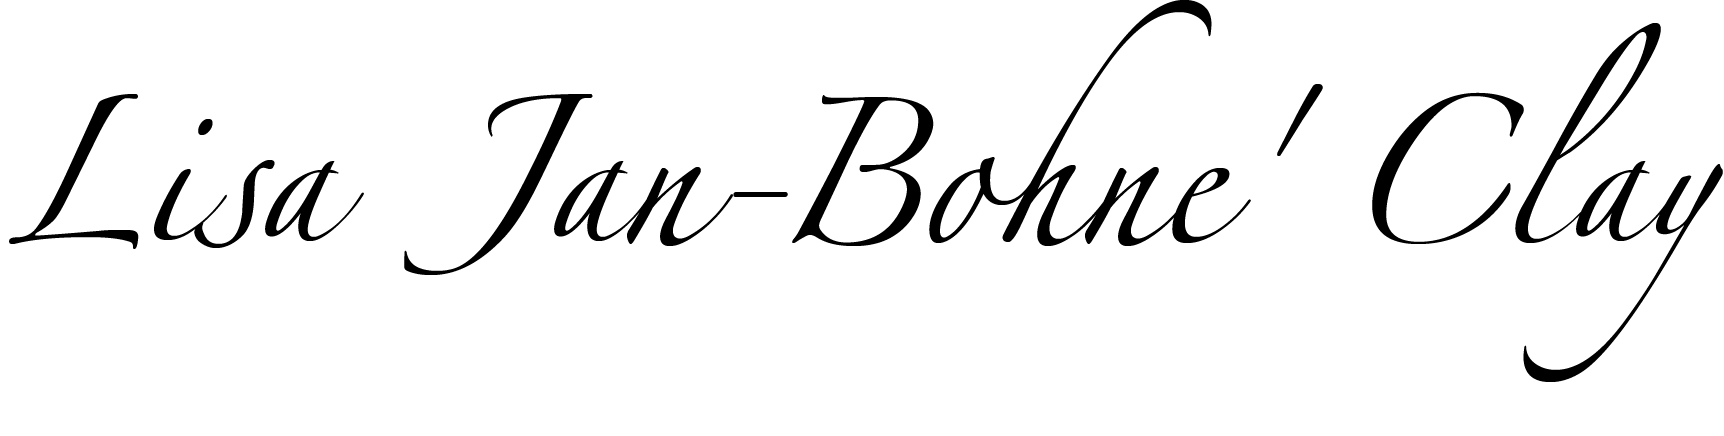 Lisa Jan-Bohne' Clay Signature